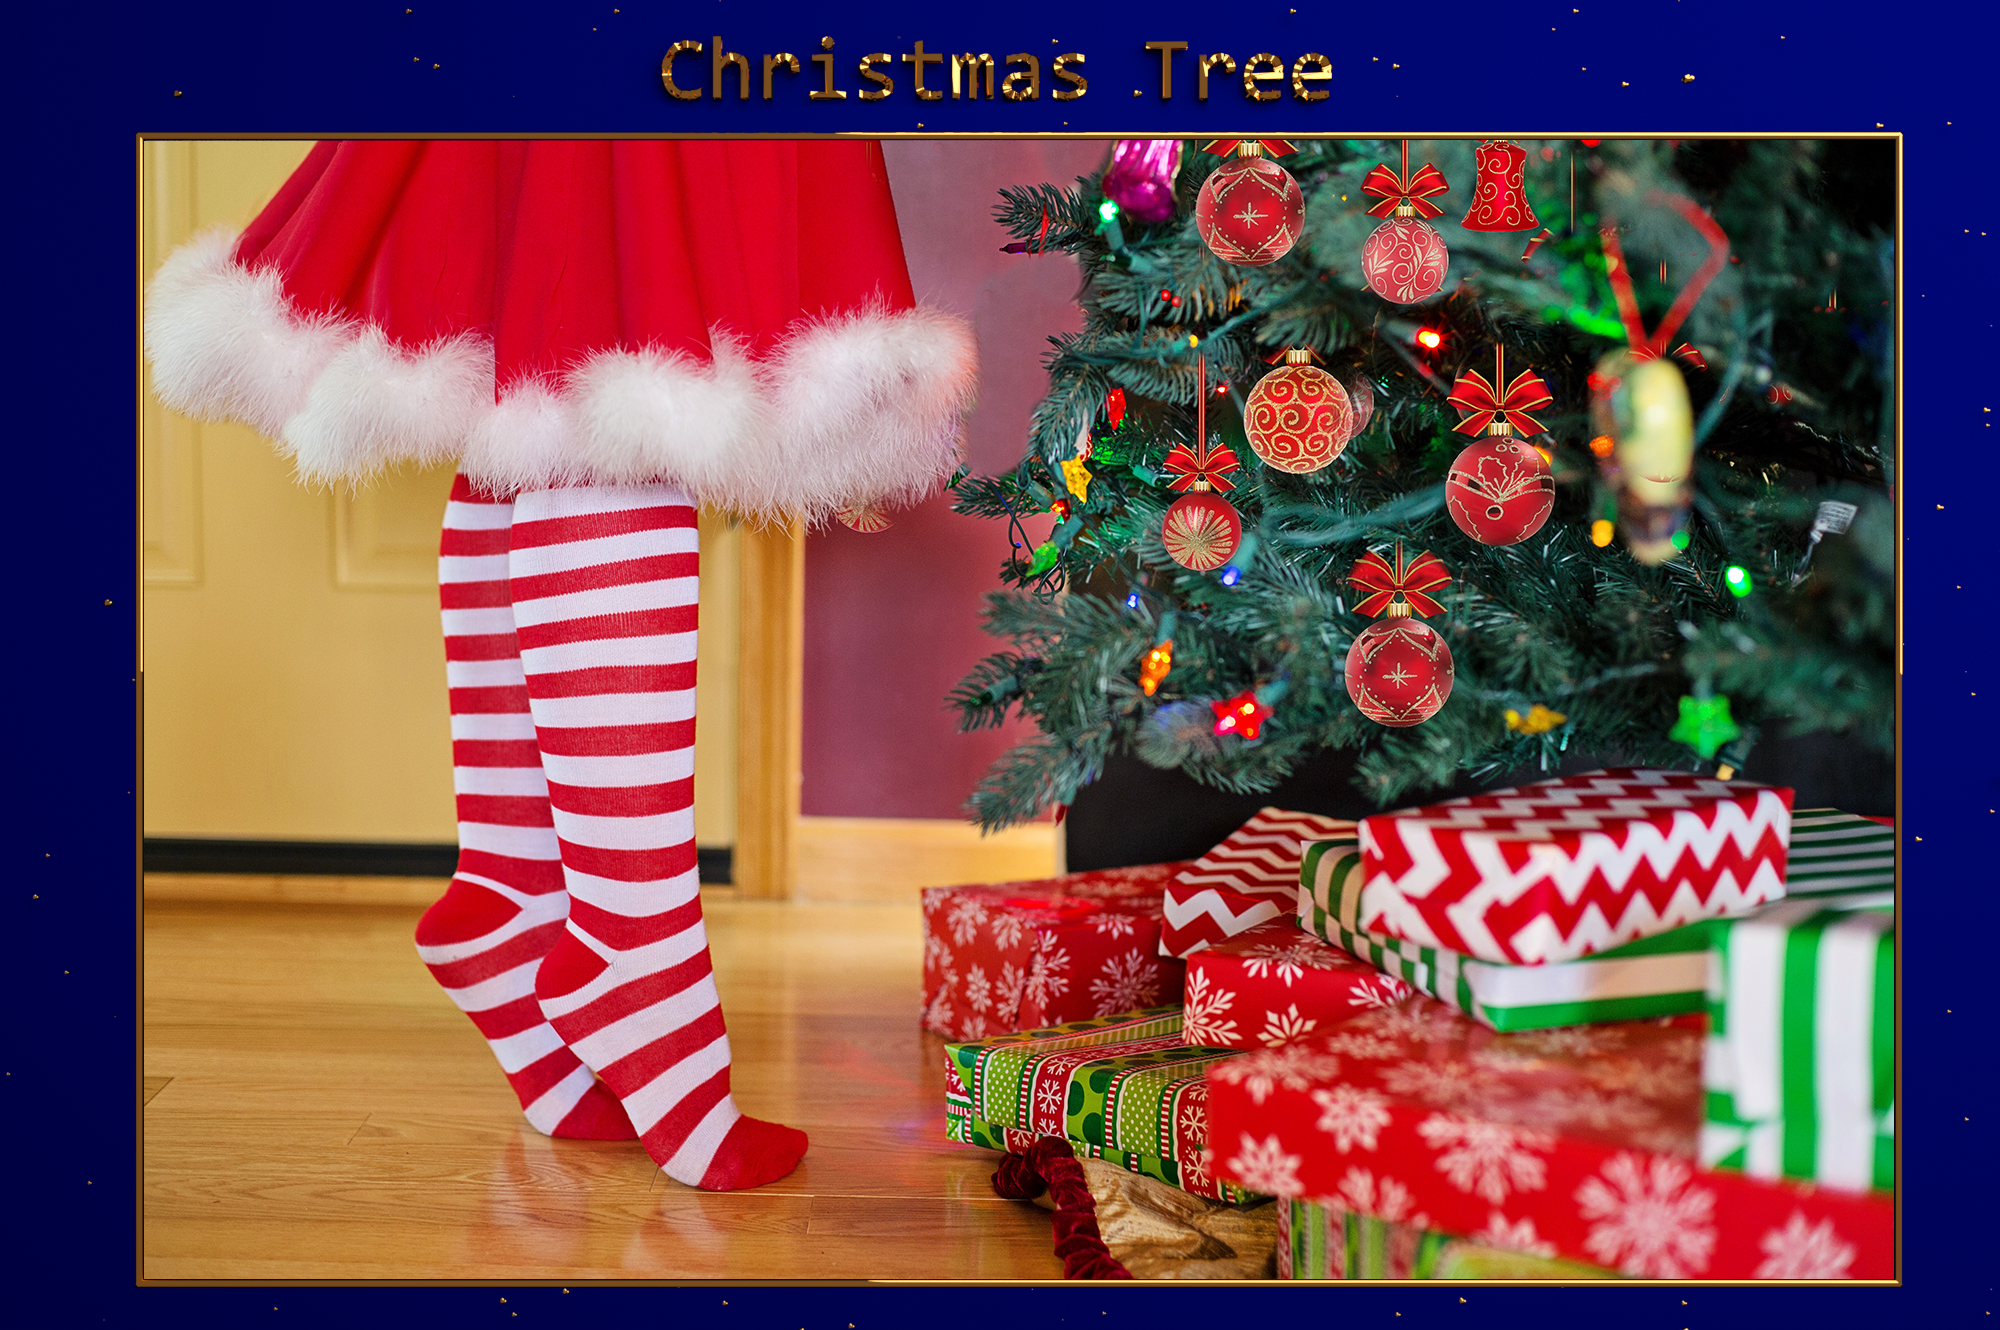 Download Free Xmas Christmas Tree Lr Presets Graphic By Pandoradreams for Cricut Explore, Silhouette and other cutting machines.